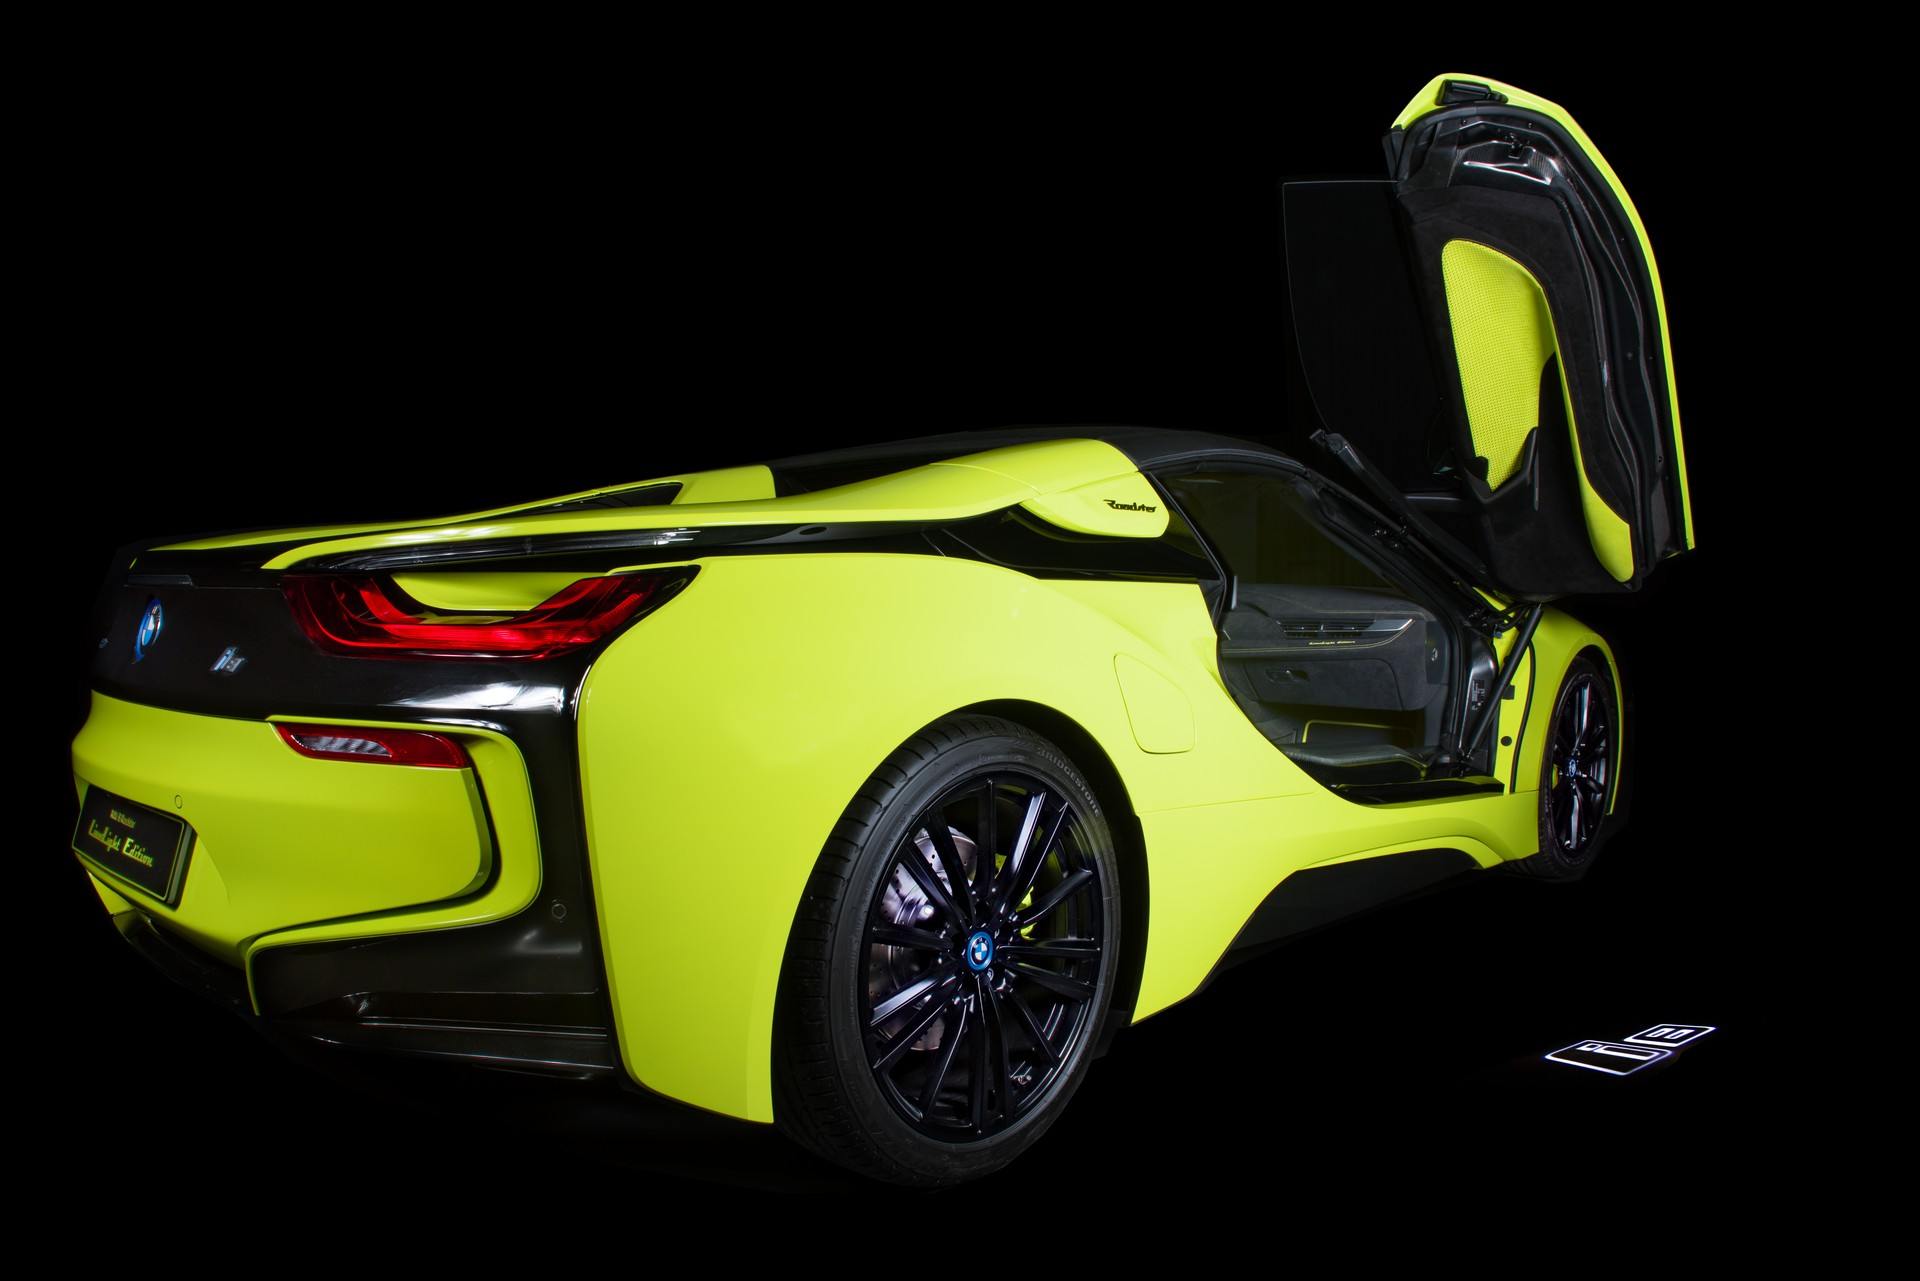 BMW-i8-Roadster-LimeLight-Edition-16